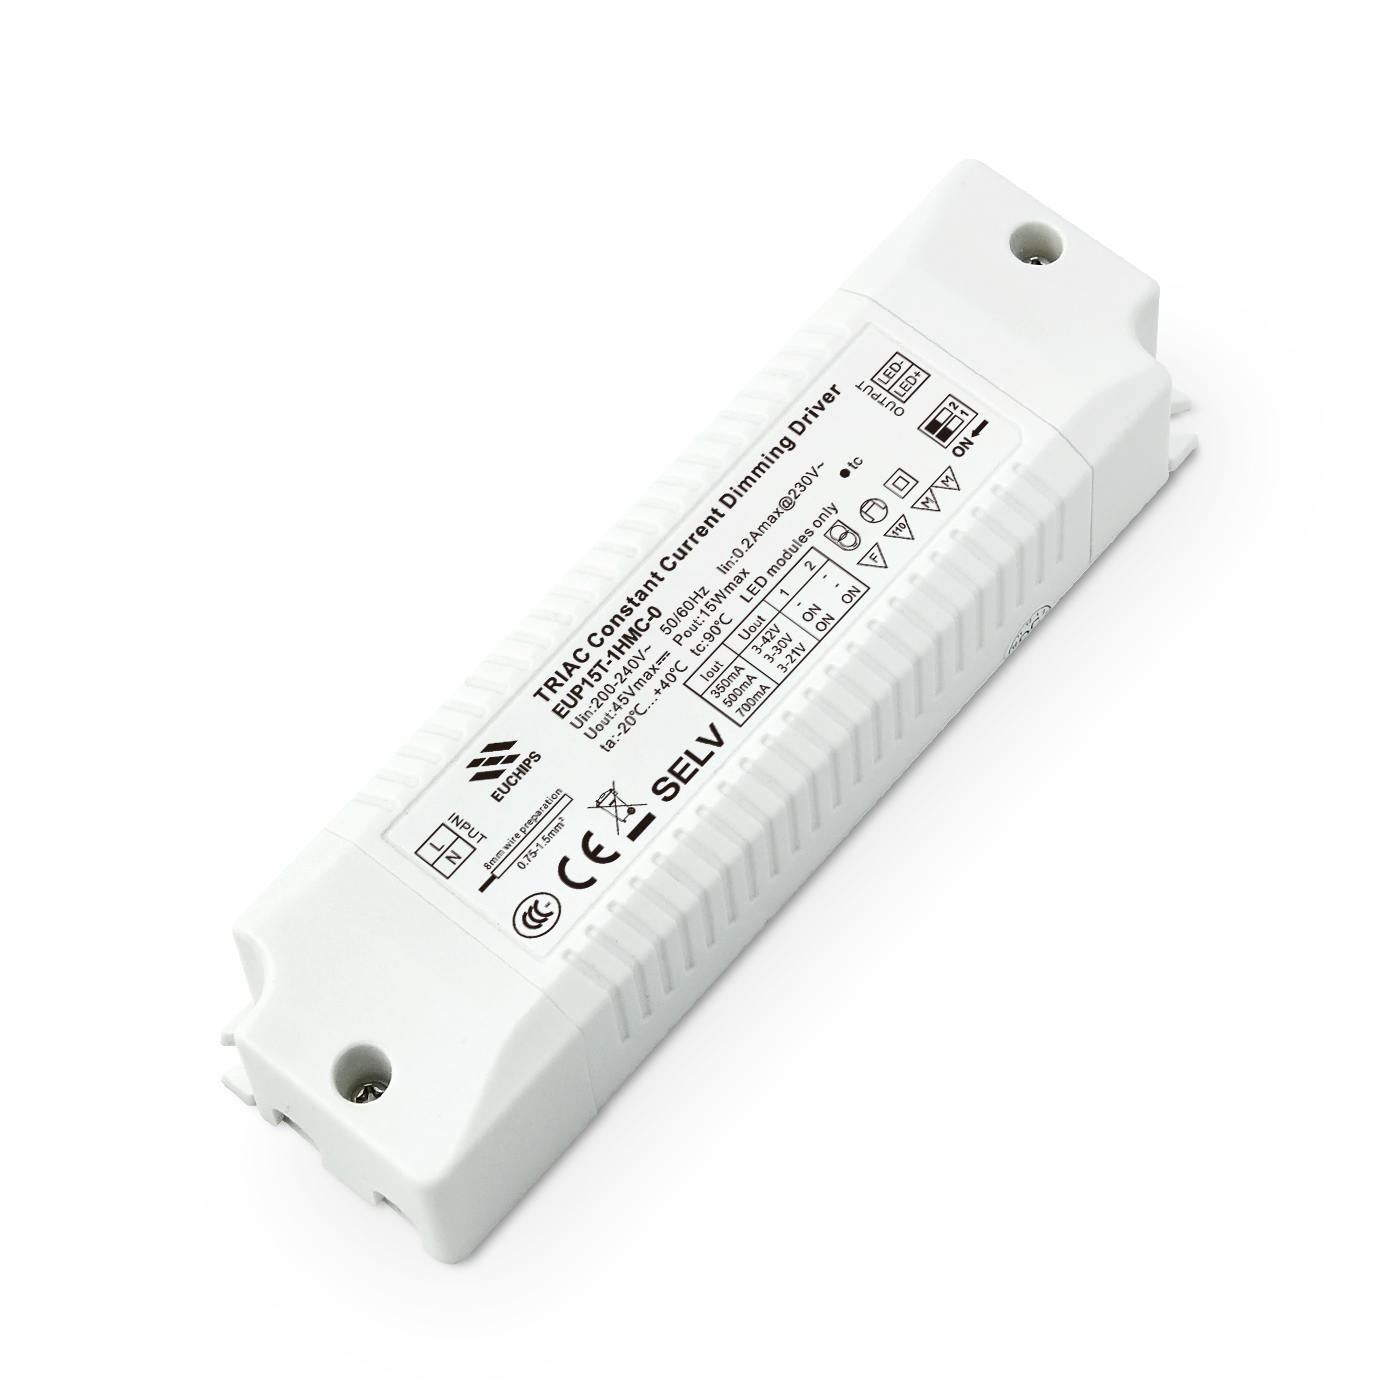 Quality Inspection for 2801f – Led Strip Rf Dimmer - 15W 280/350/380/450mA*1ch CC Triac Driver – Euchips